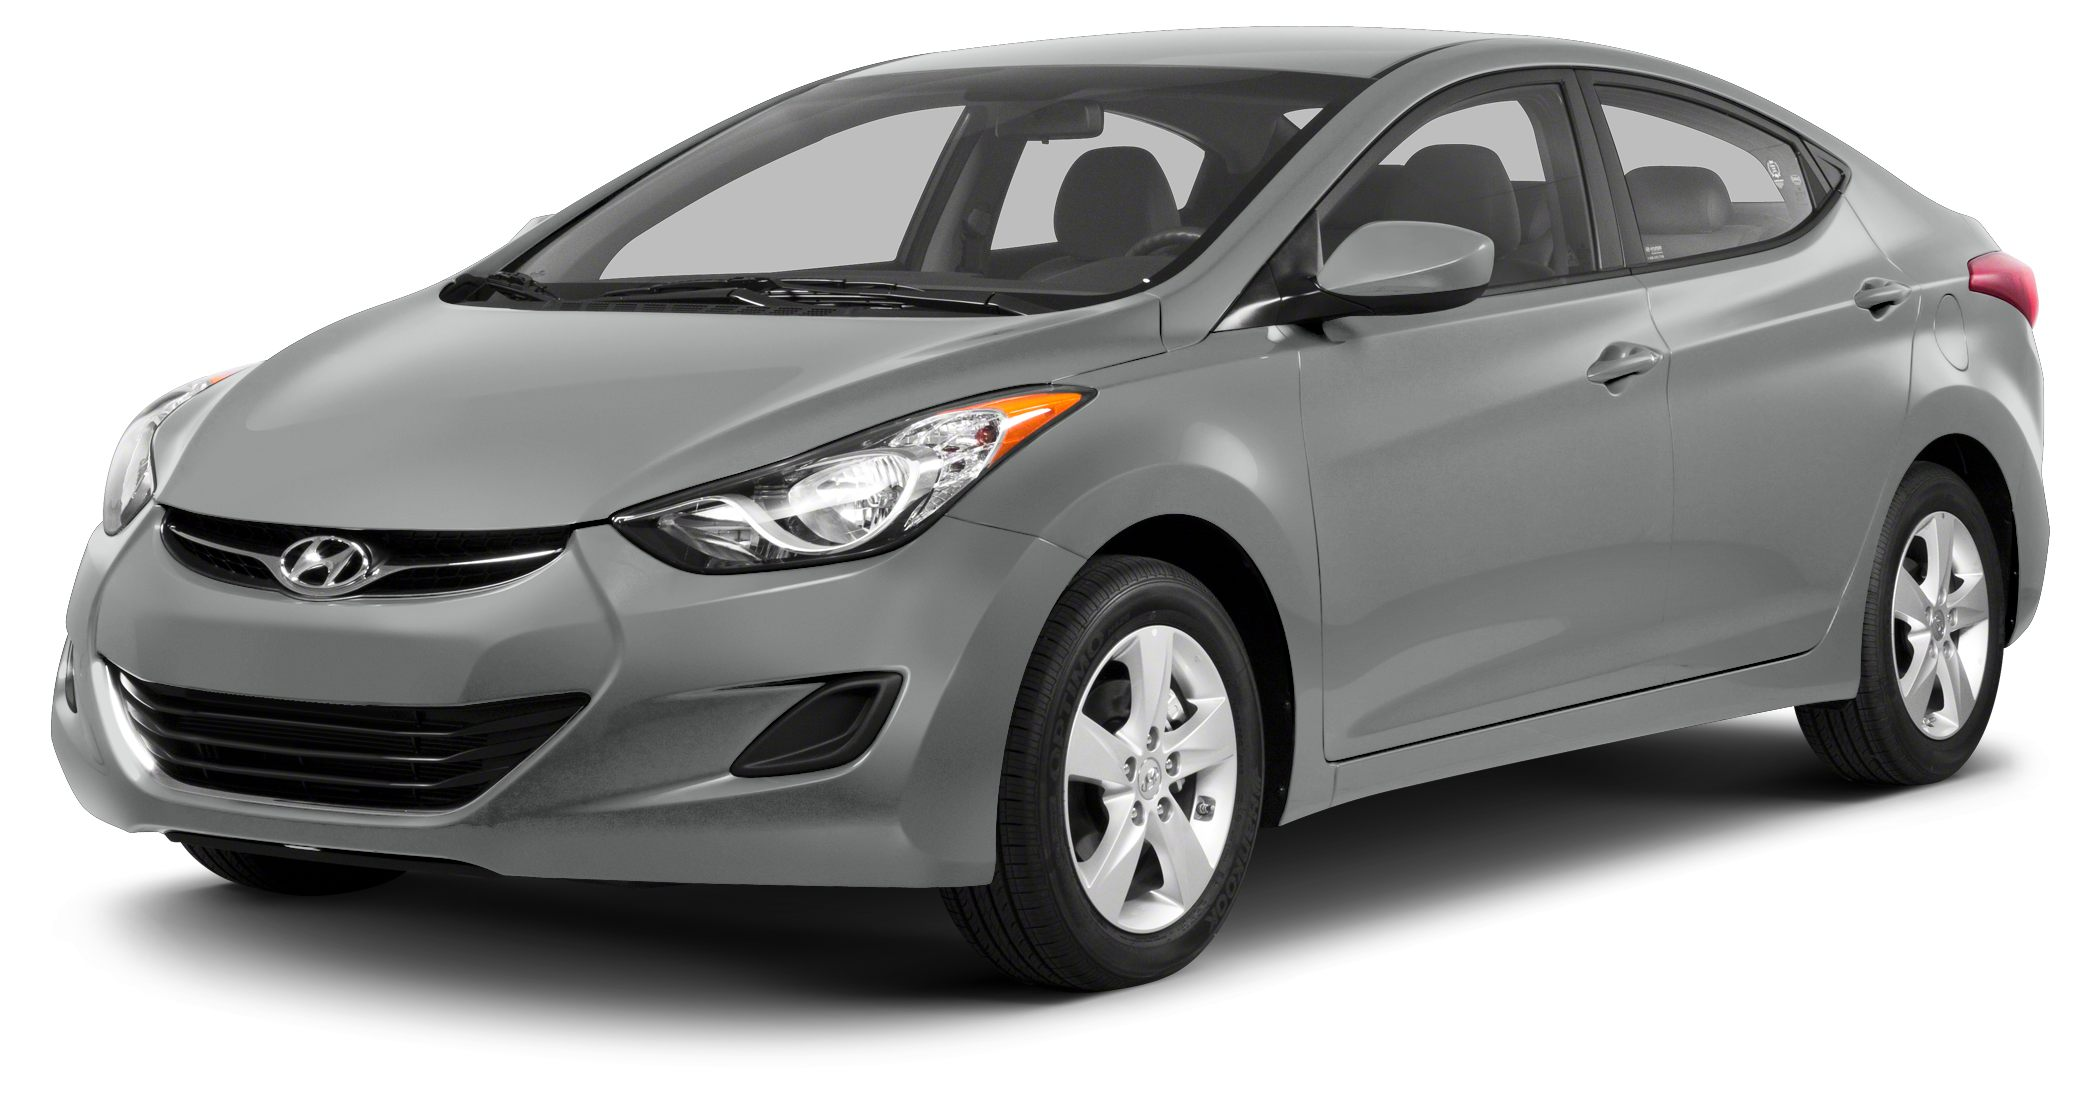 2013 Hyundai Elantra GLS Hyundai Certified with only 17k miles on this one owner fully serviced by